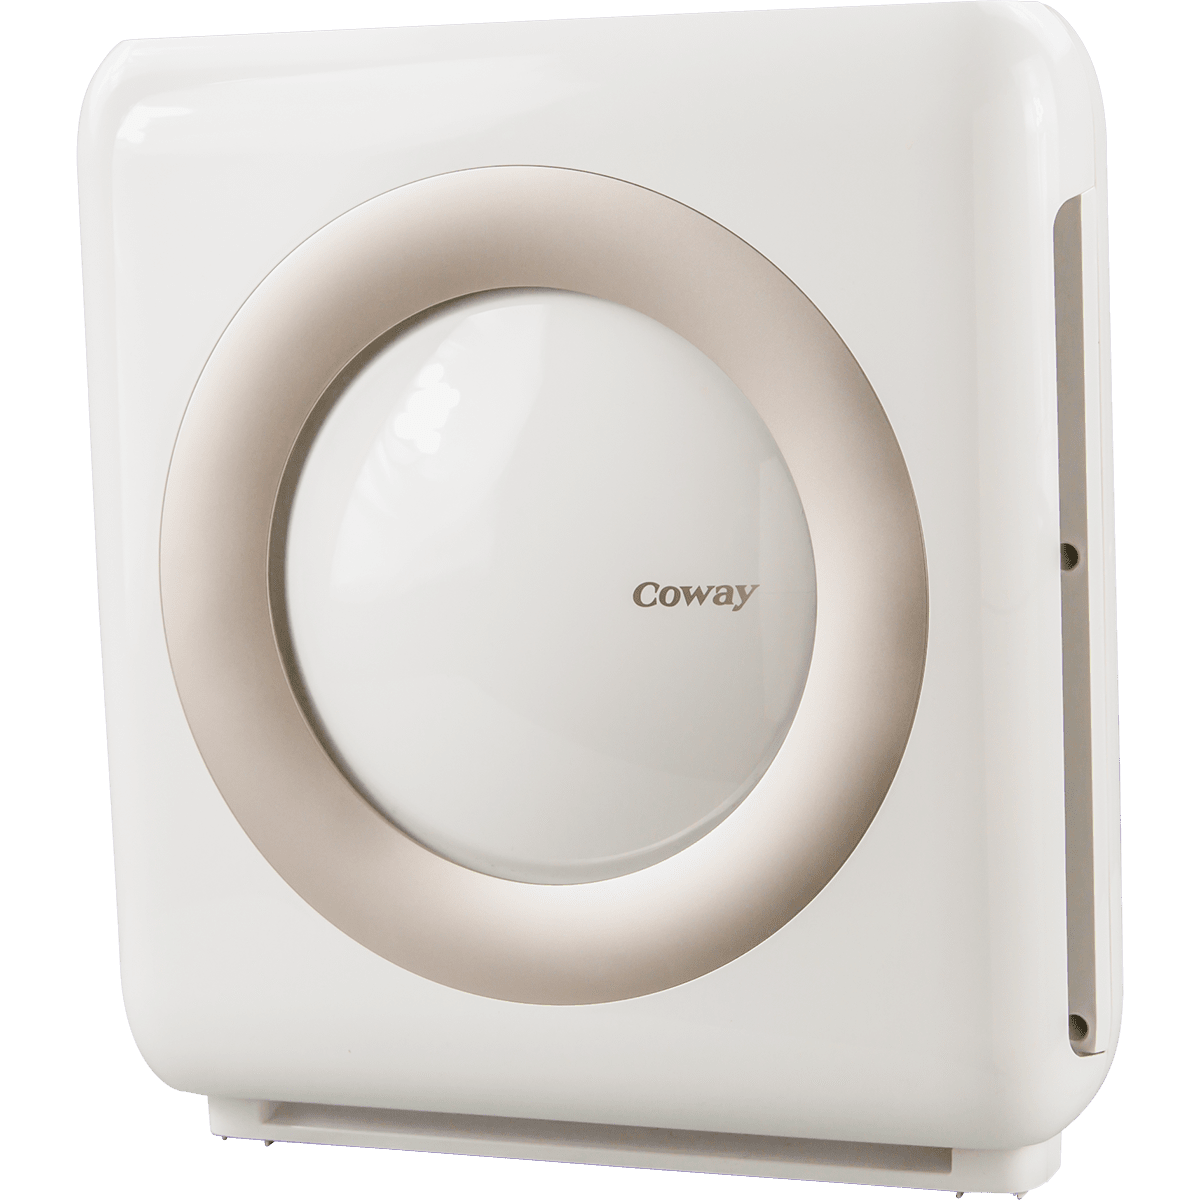 Coway AP-1512HH Mighty Air Purifier with True HEPA Filtration - White